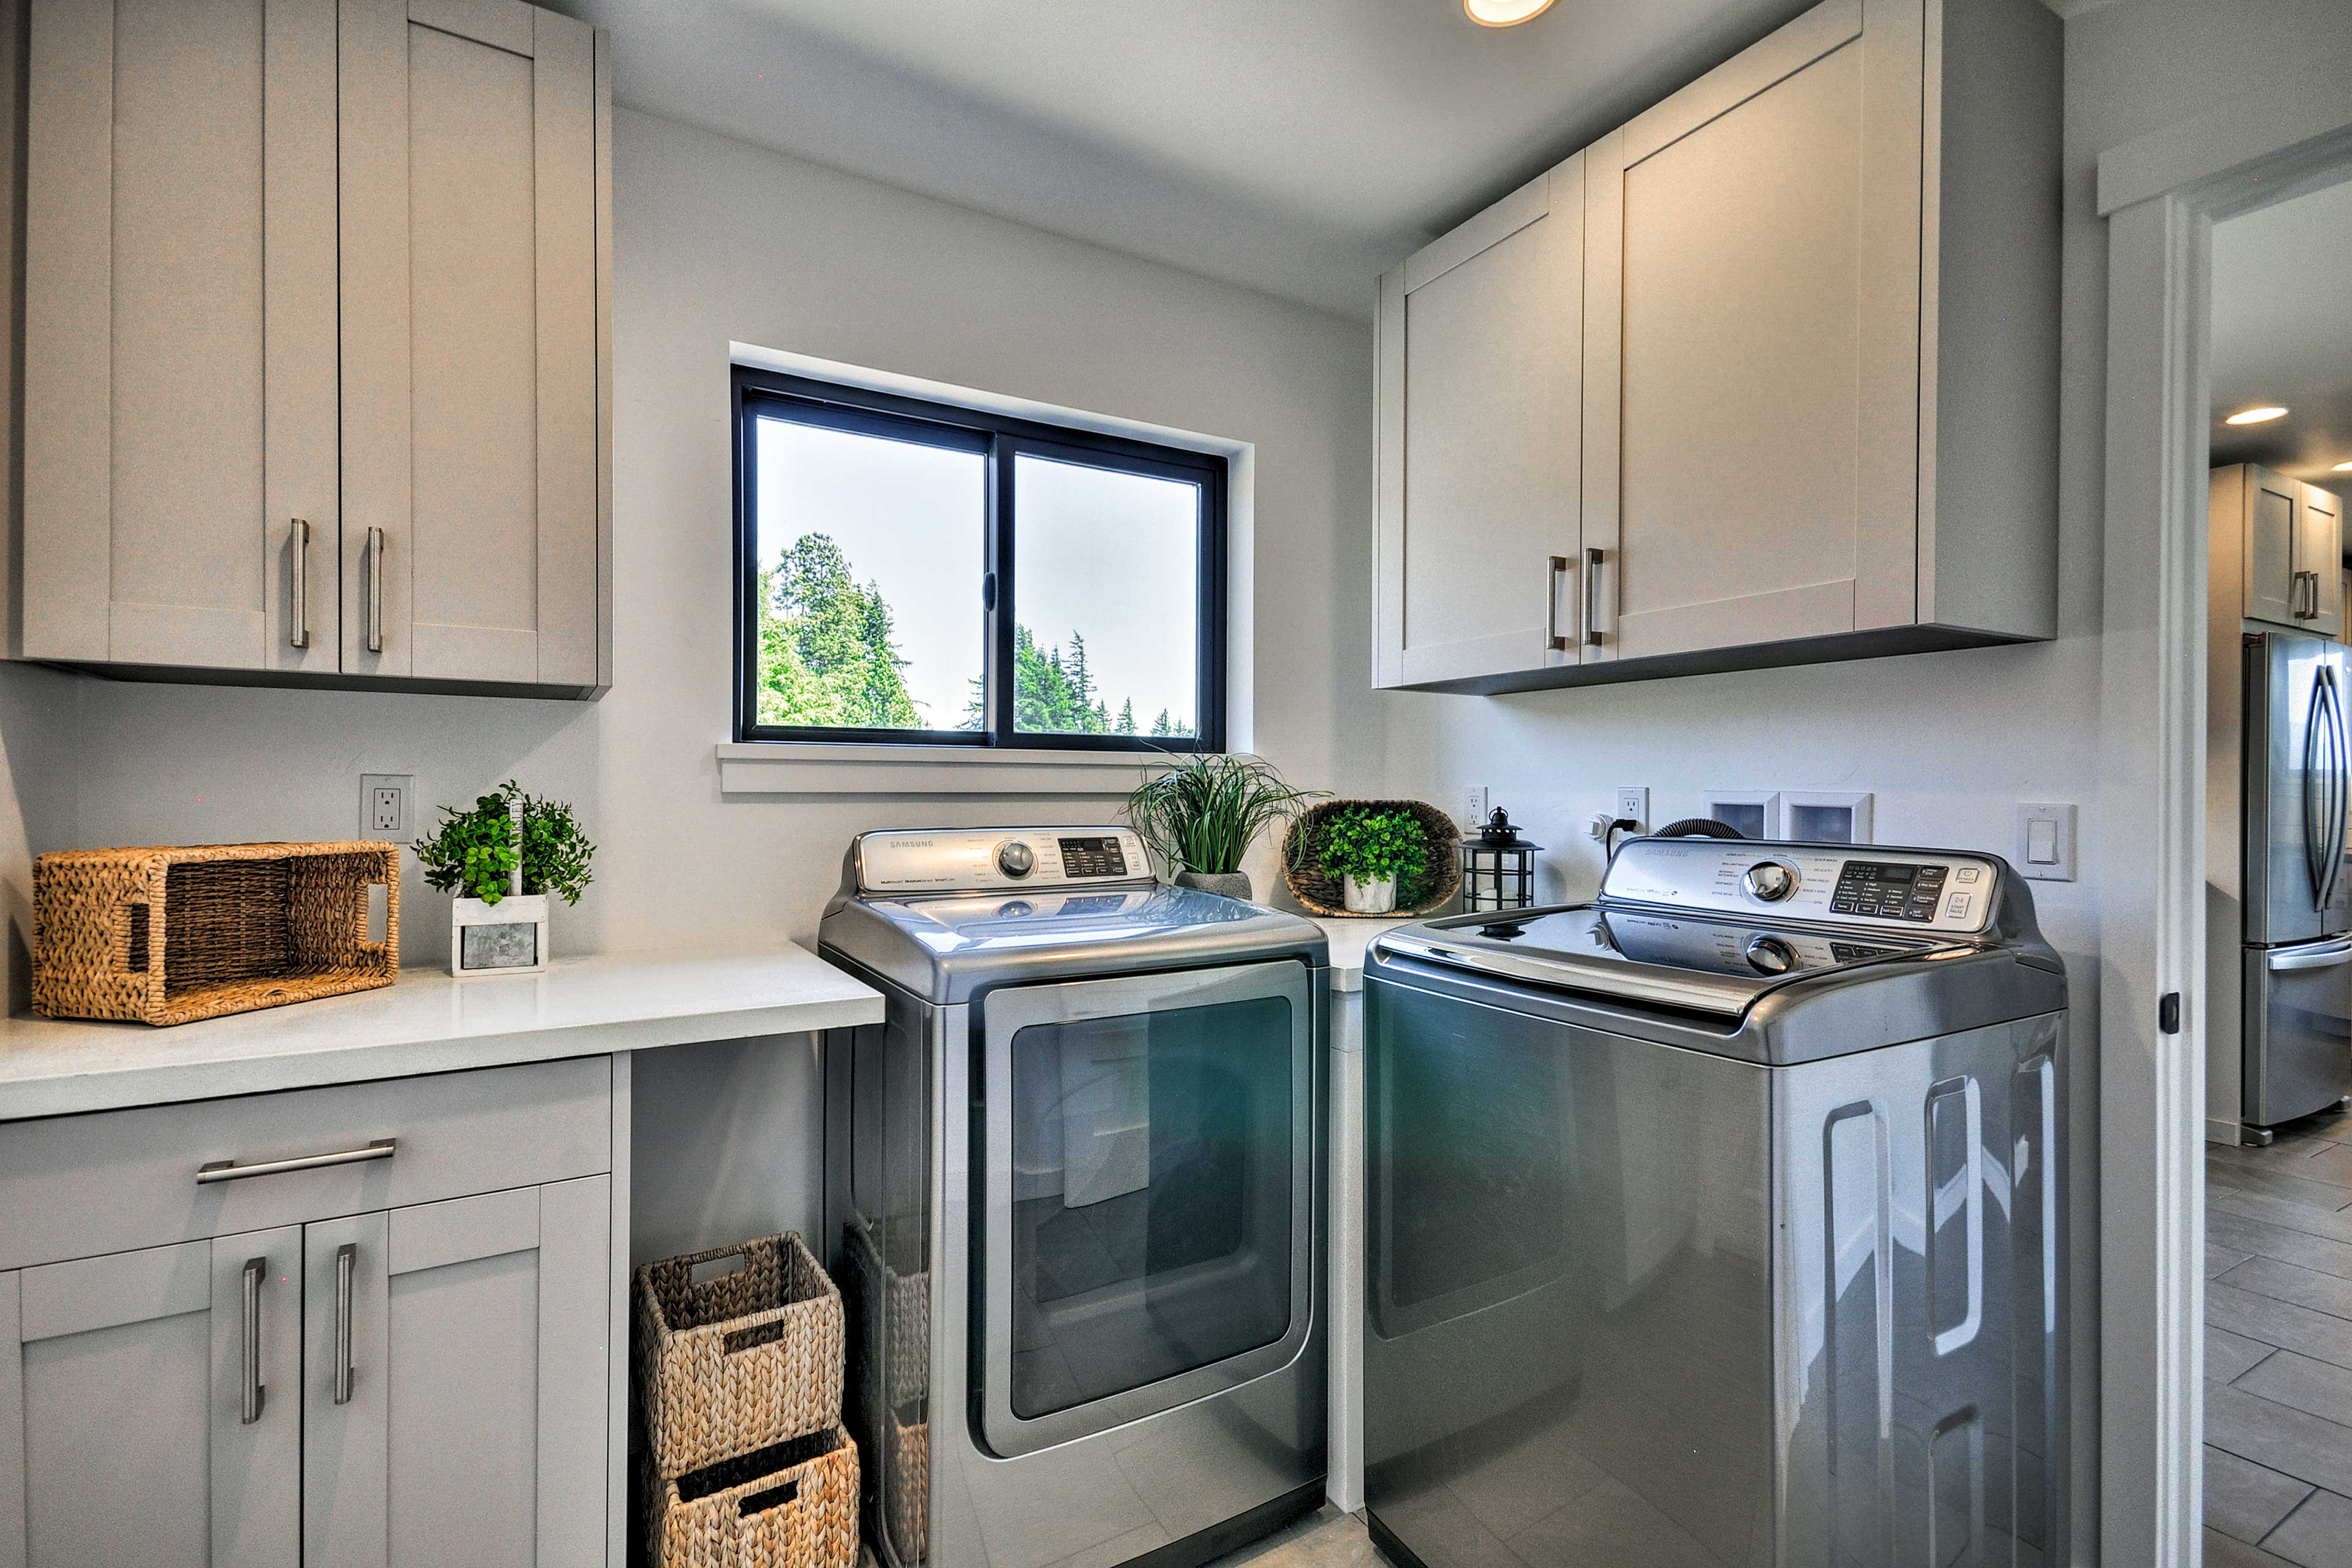 The laundry room will keep all your vacation clothes clean.